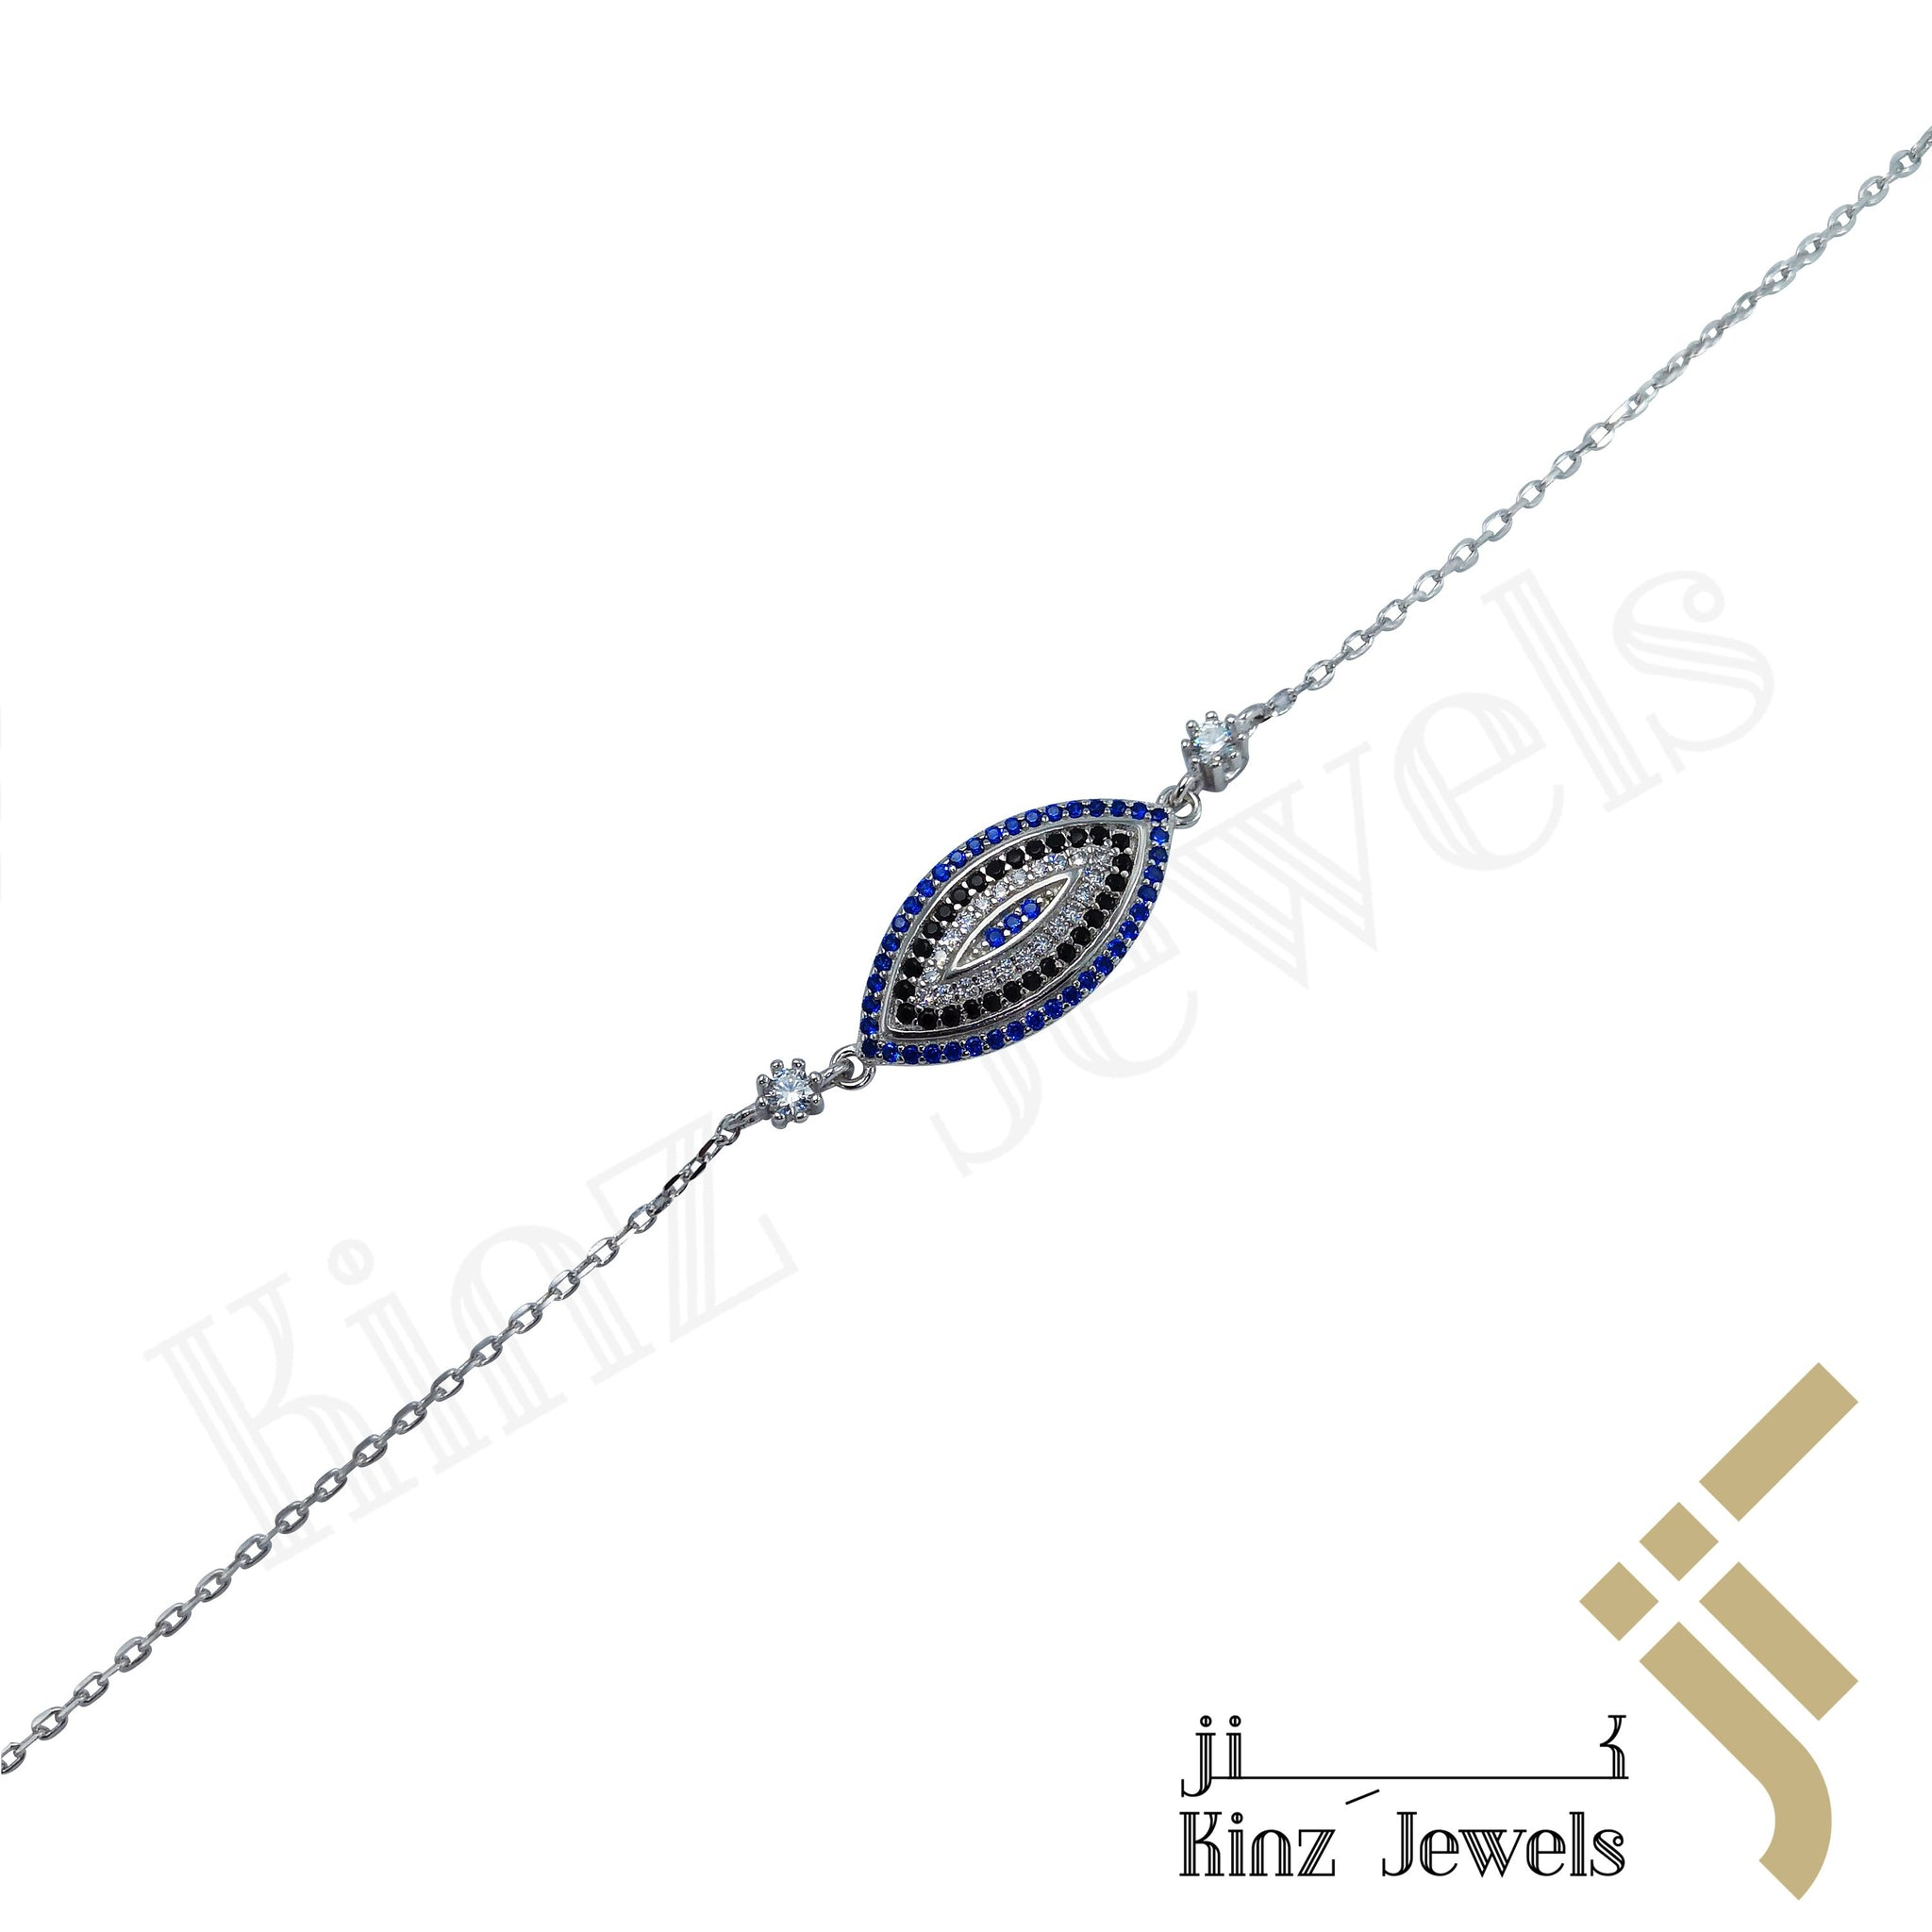 kinzjewels - Sterling Silver Evil Eye Bracelet Blue white Black Zircon Stones